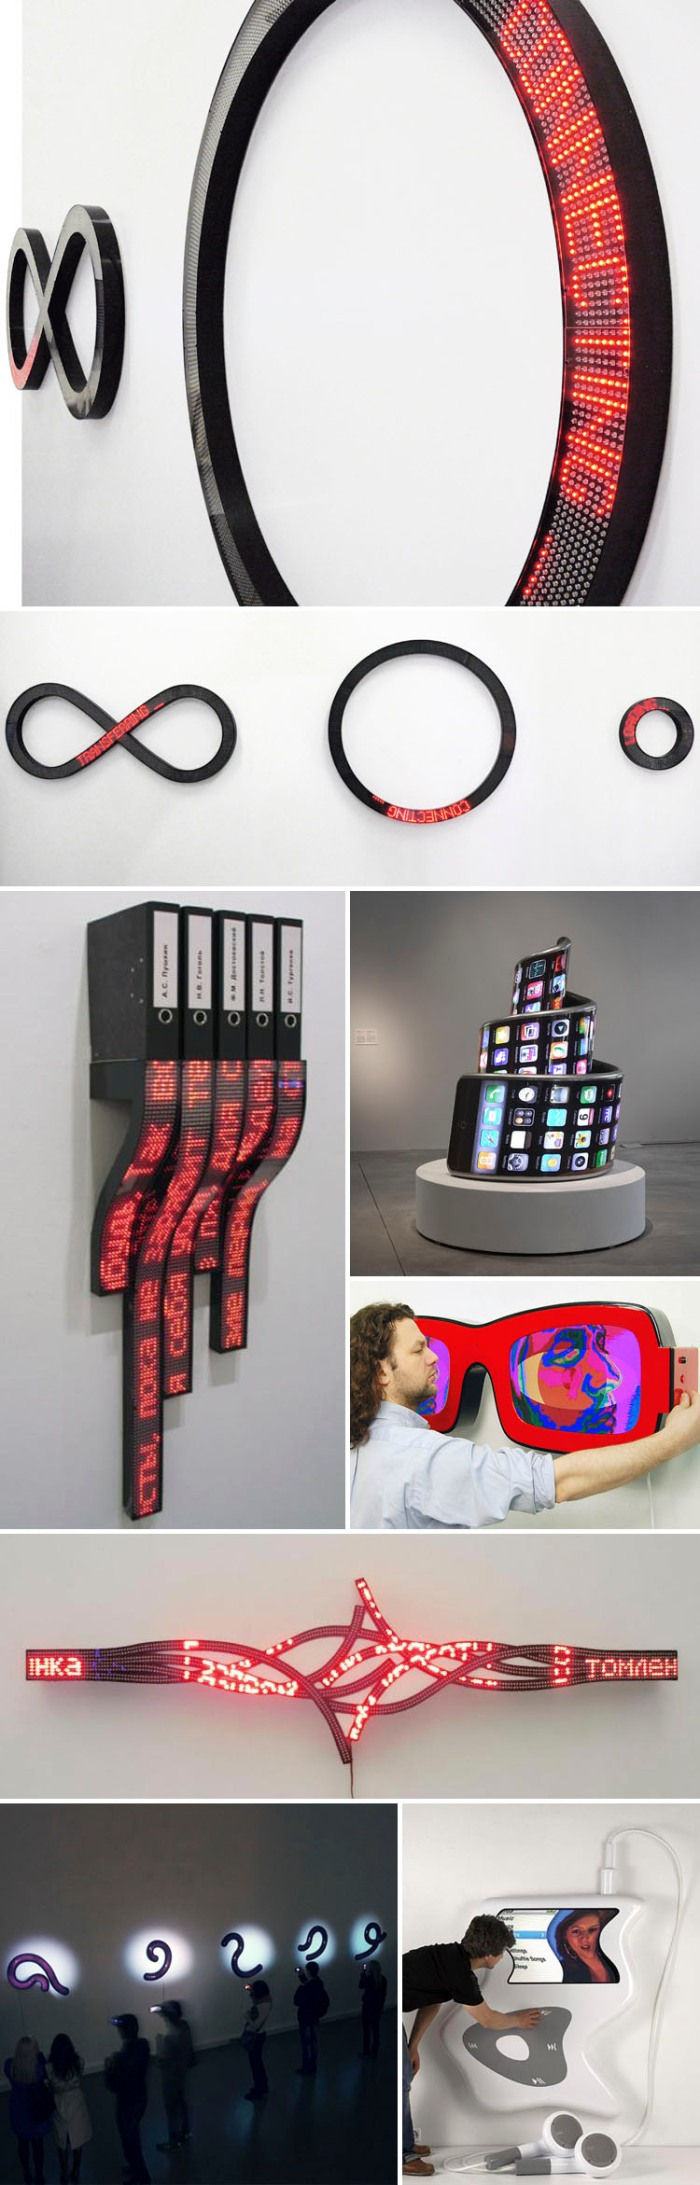 New Media Sculptures, interactive art and installations, Contemporary Russian Art, LEDs, collabcubed